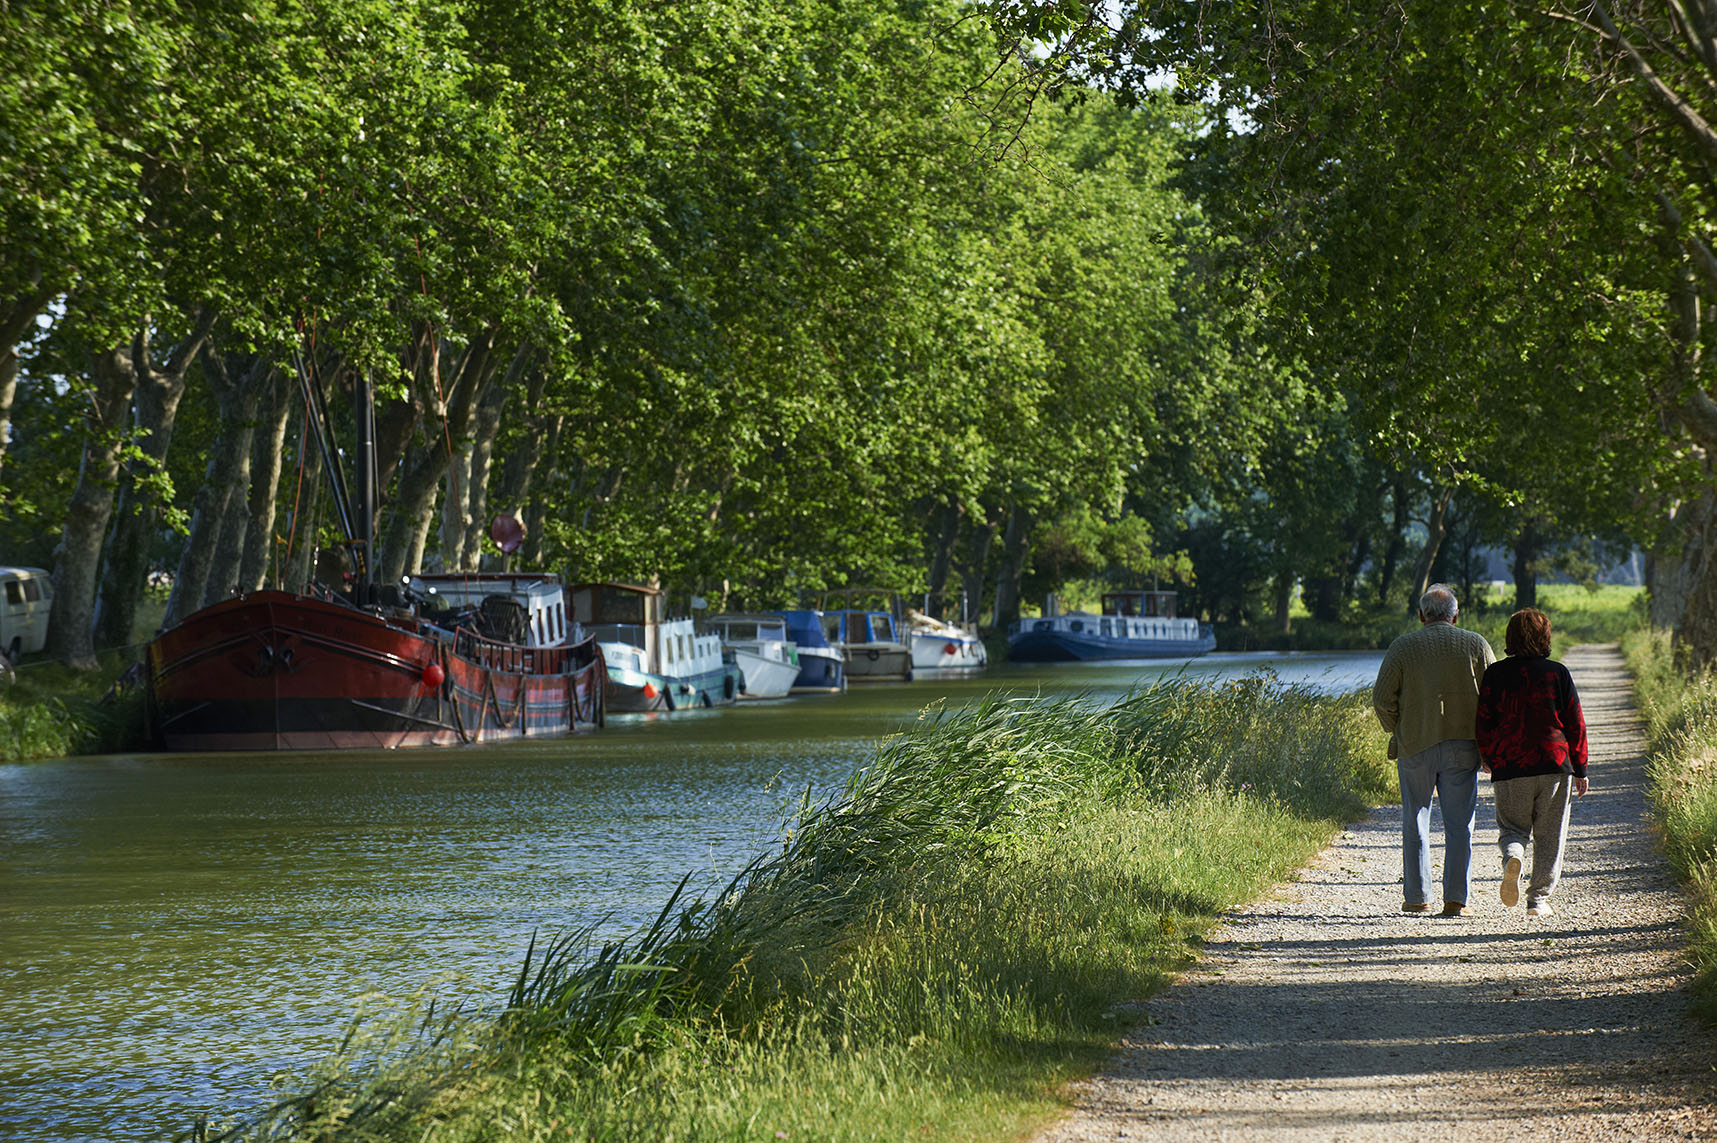 France, Languedoc-Roussillon, Aude (11), city of Le Somail, Canal du Midi, river harbour